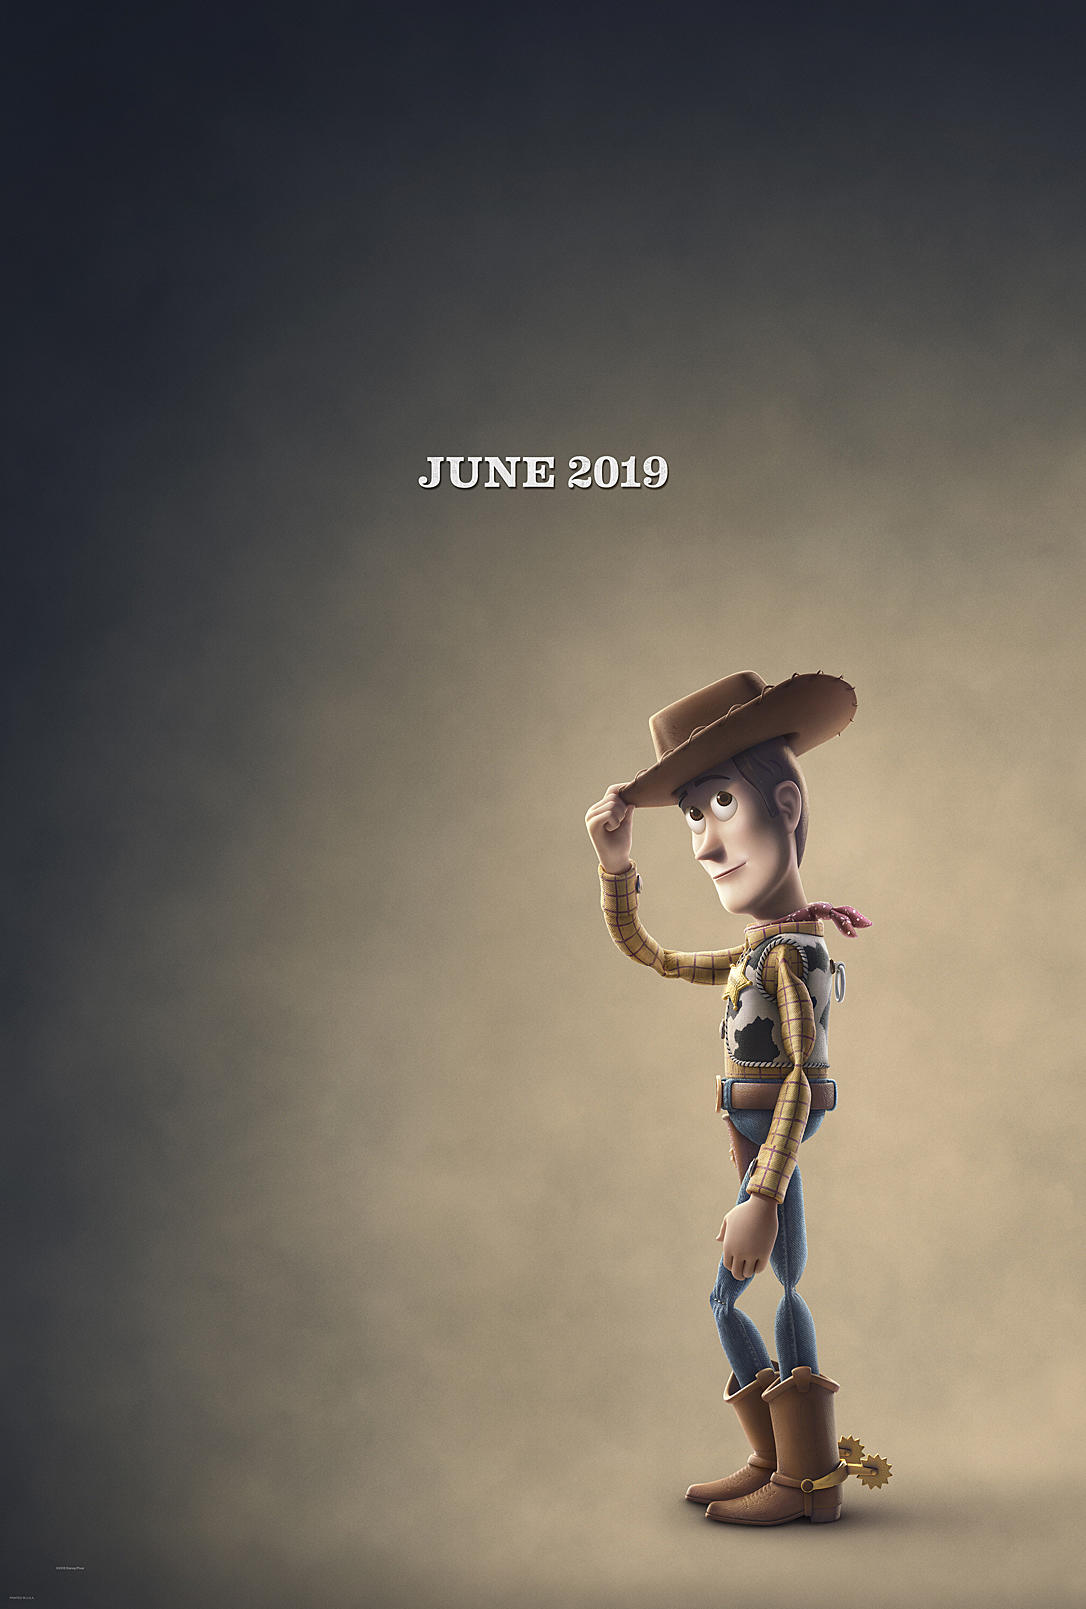 Is Woody Going To Die In Toy Story 4